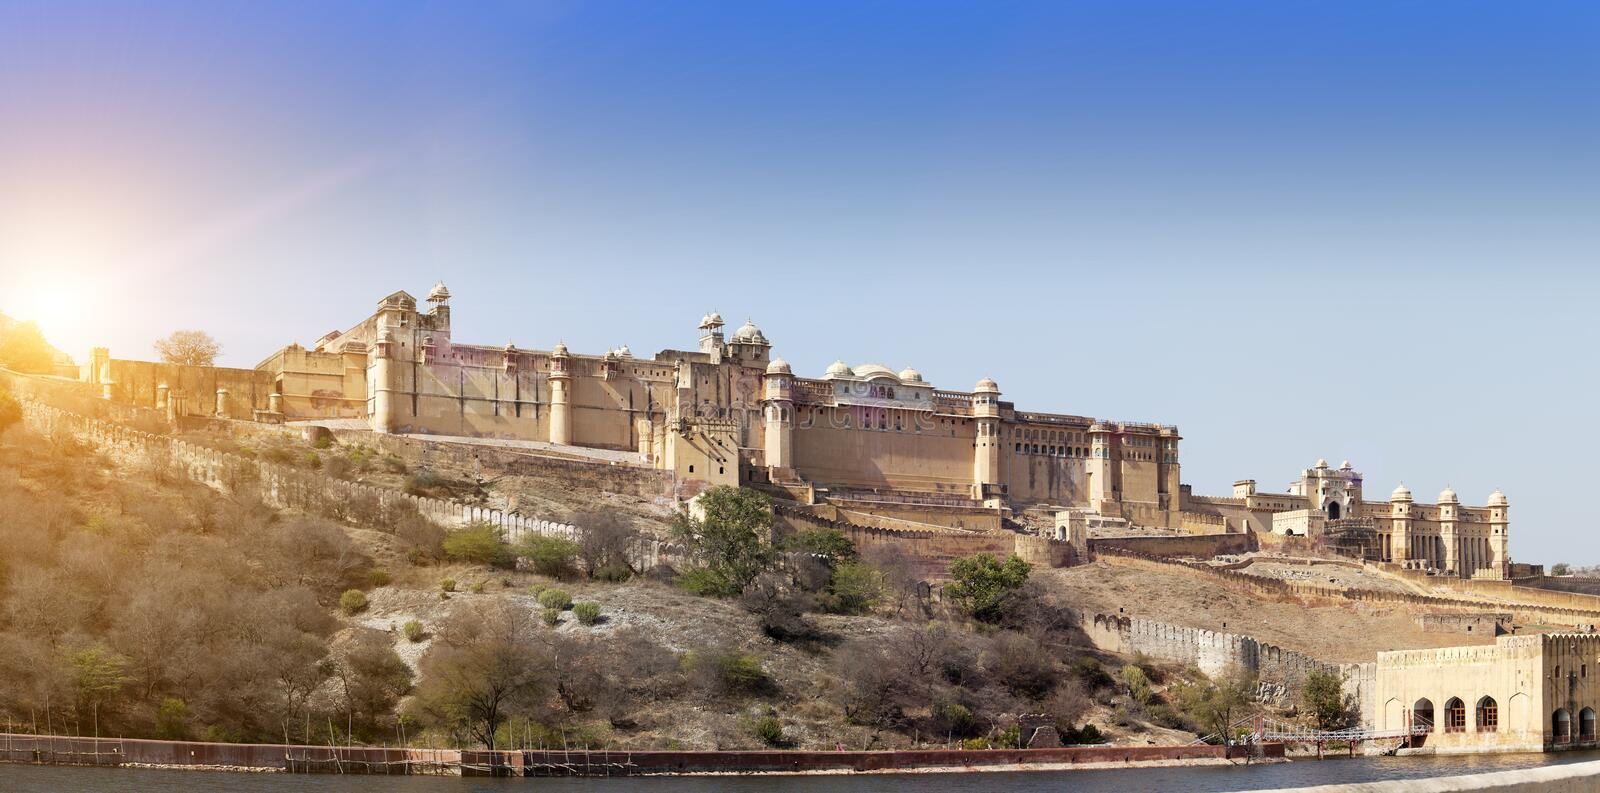 India. Jaipur. Amber fort. In a sunny day stock photos